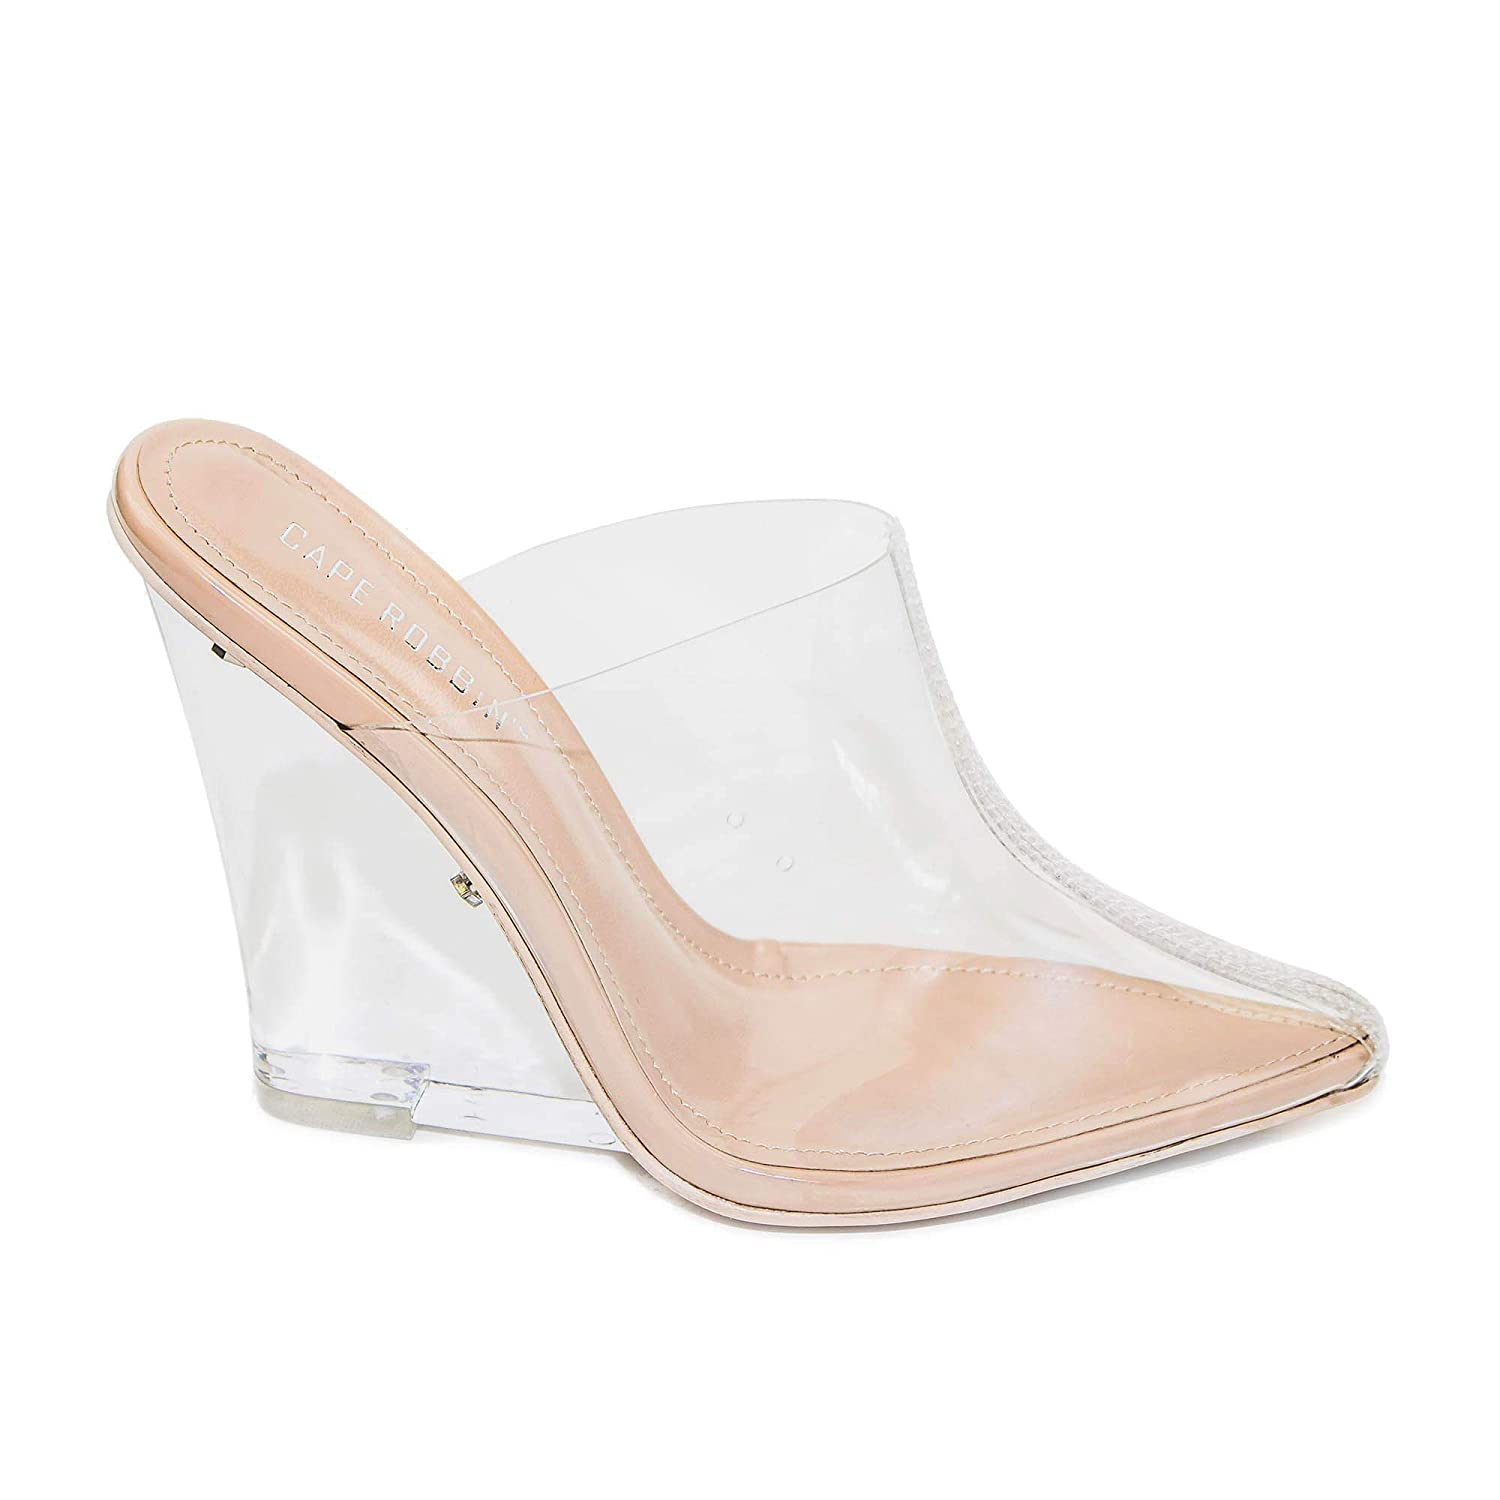 Cape Robbin Womens Sugar Transparent Lucite Clear Wedge Heel PVC Closed Toe Slip On Mules